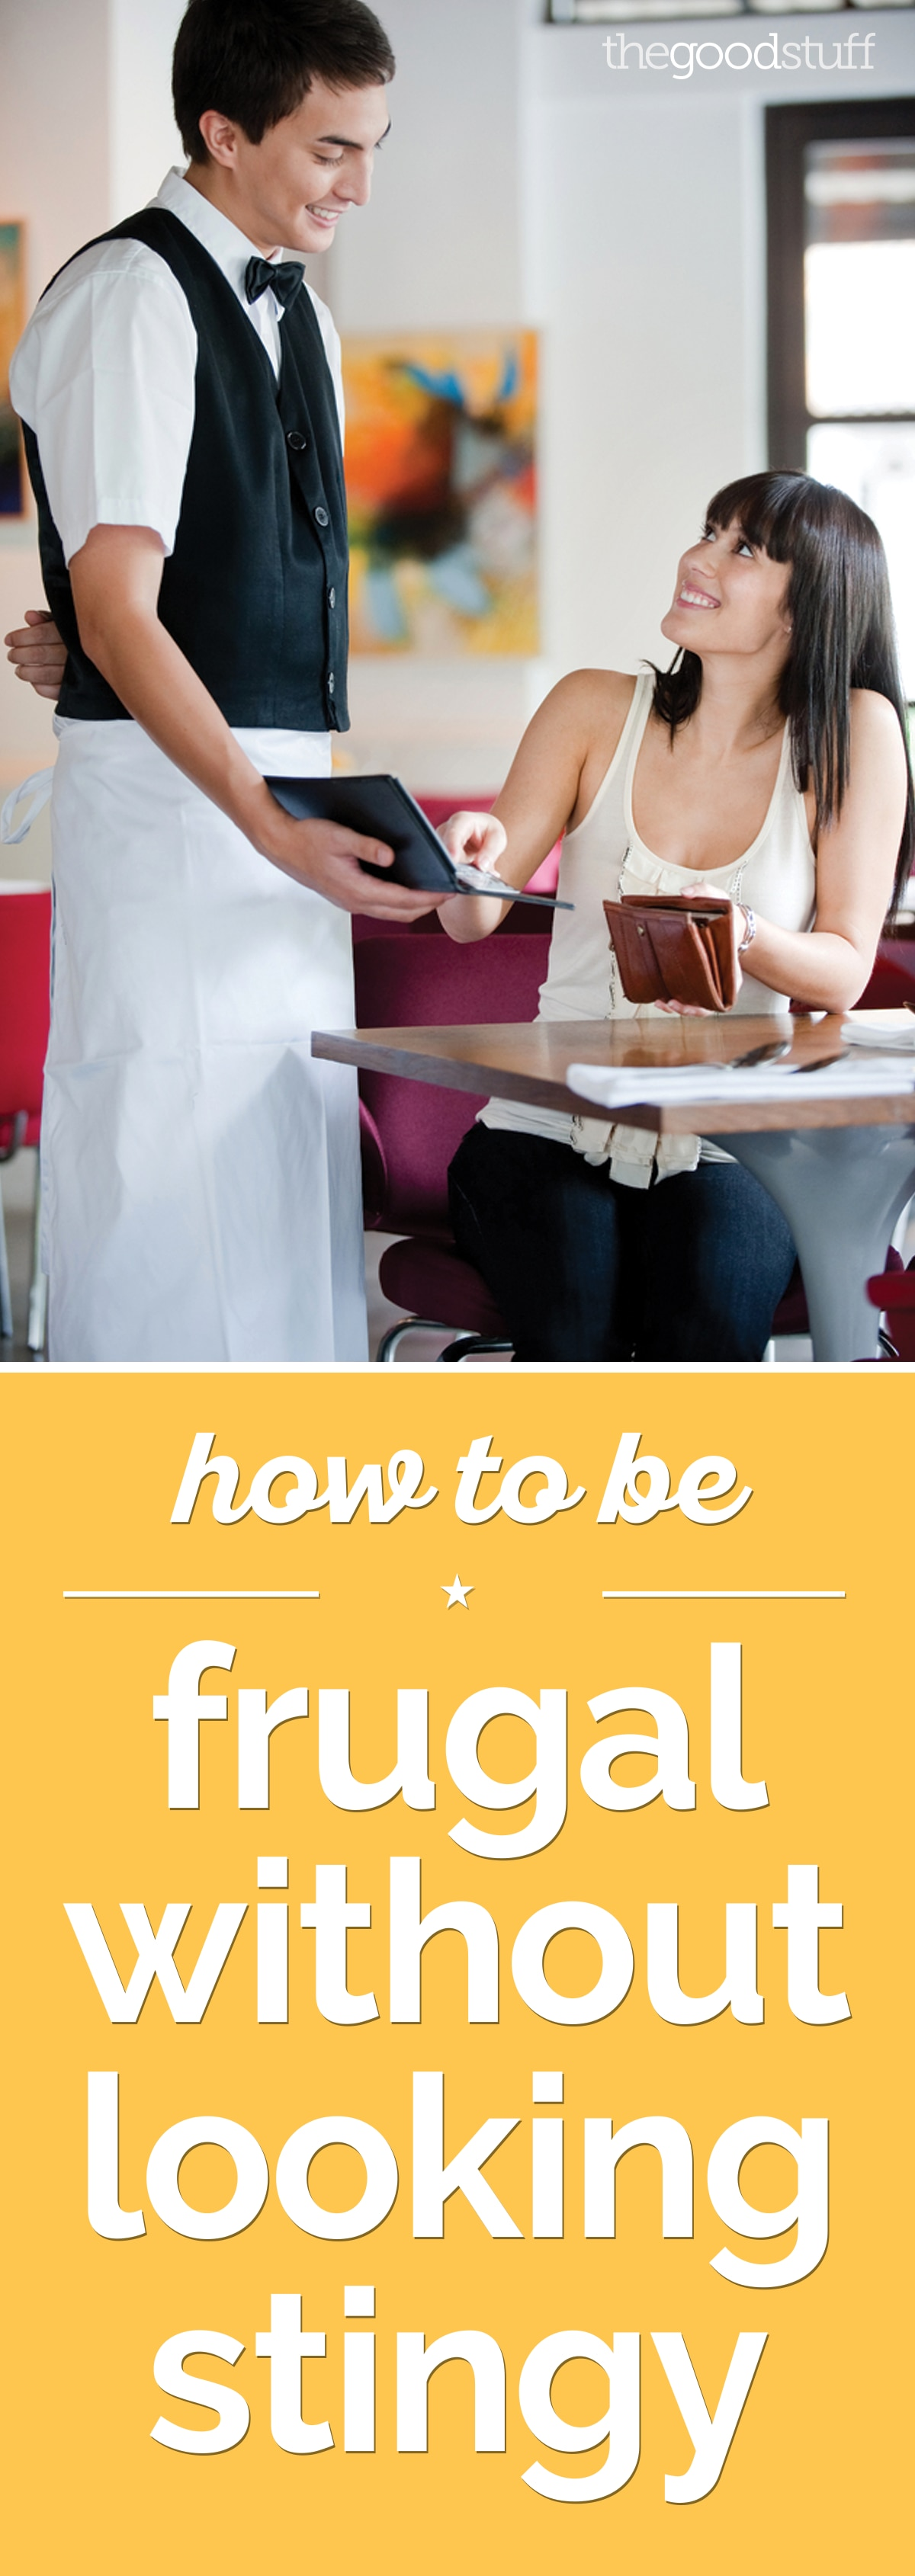 How to Be Frugal Without Looking Stingy | thegoodstuff